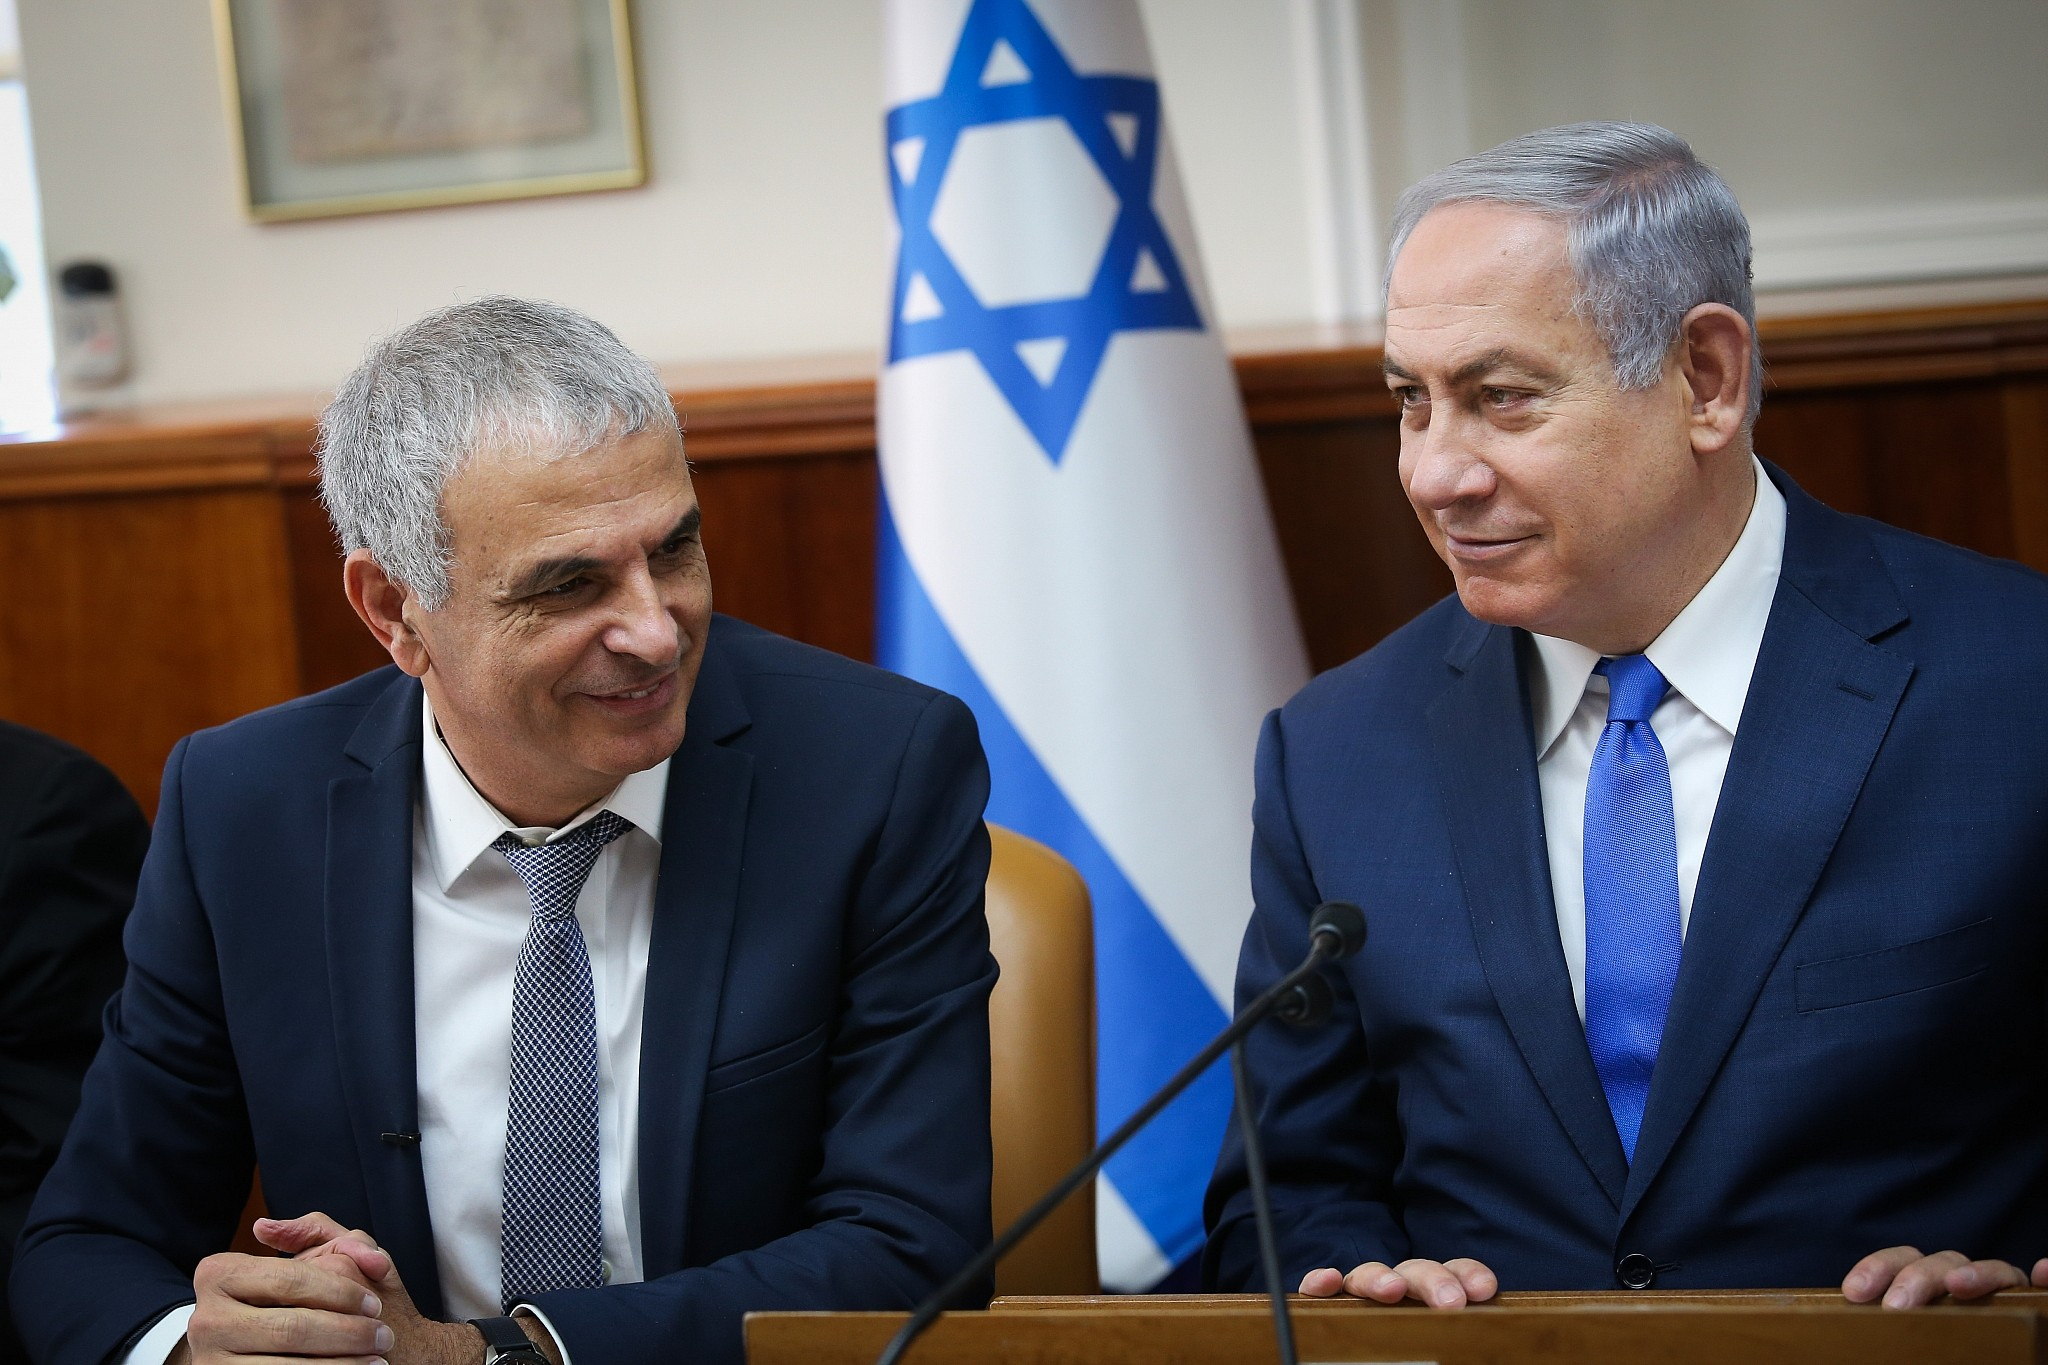 Knesset, gov. to be in Jerusalem regardless of peace deal: Netanyahu